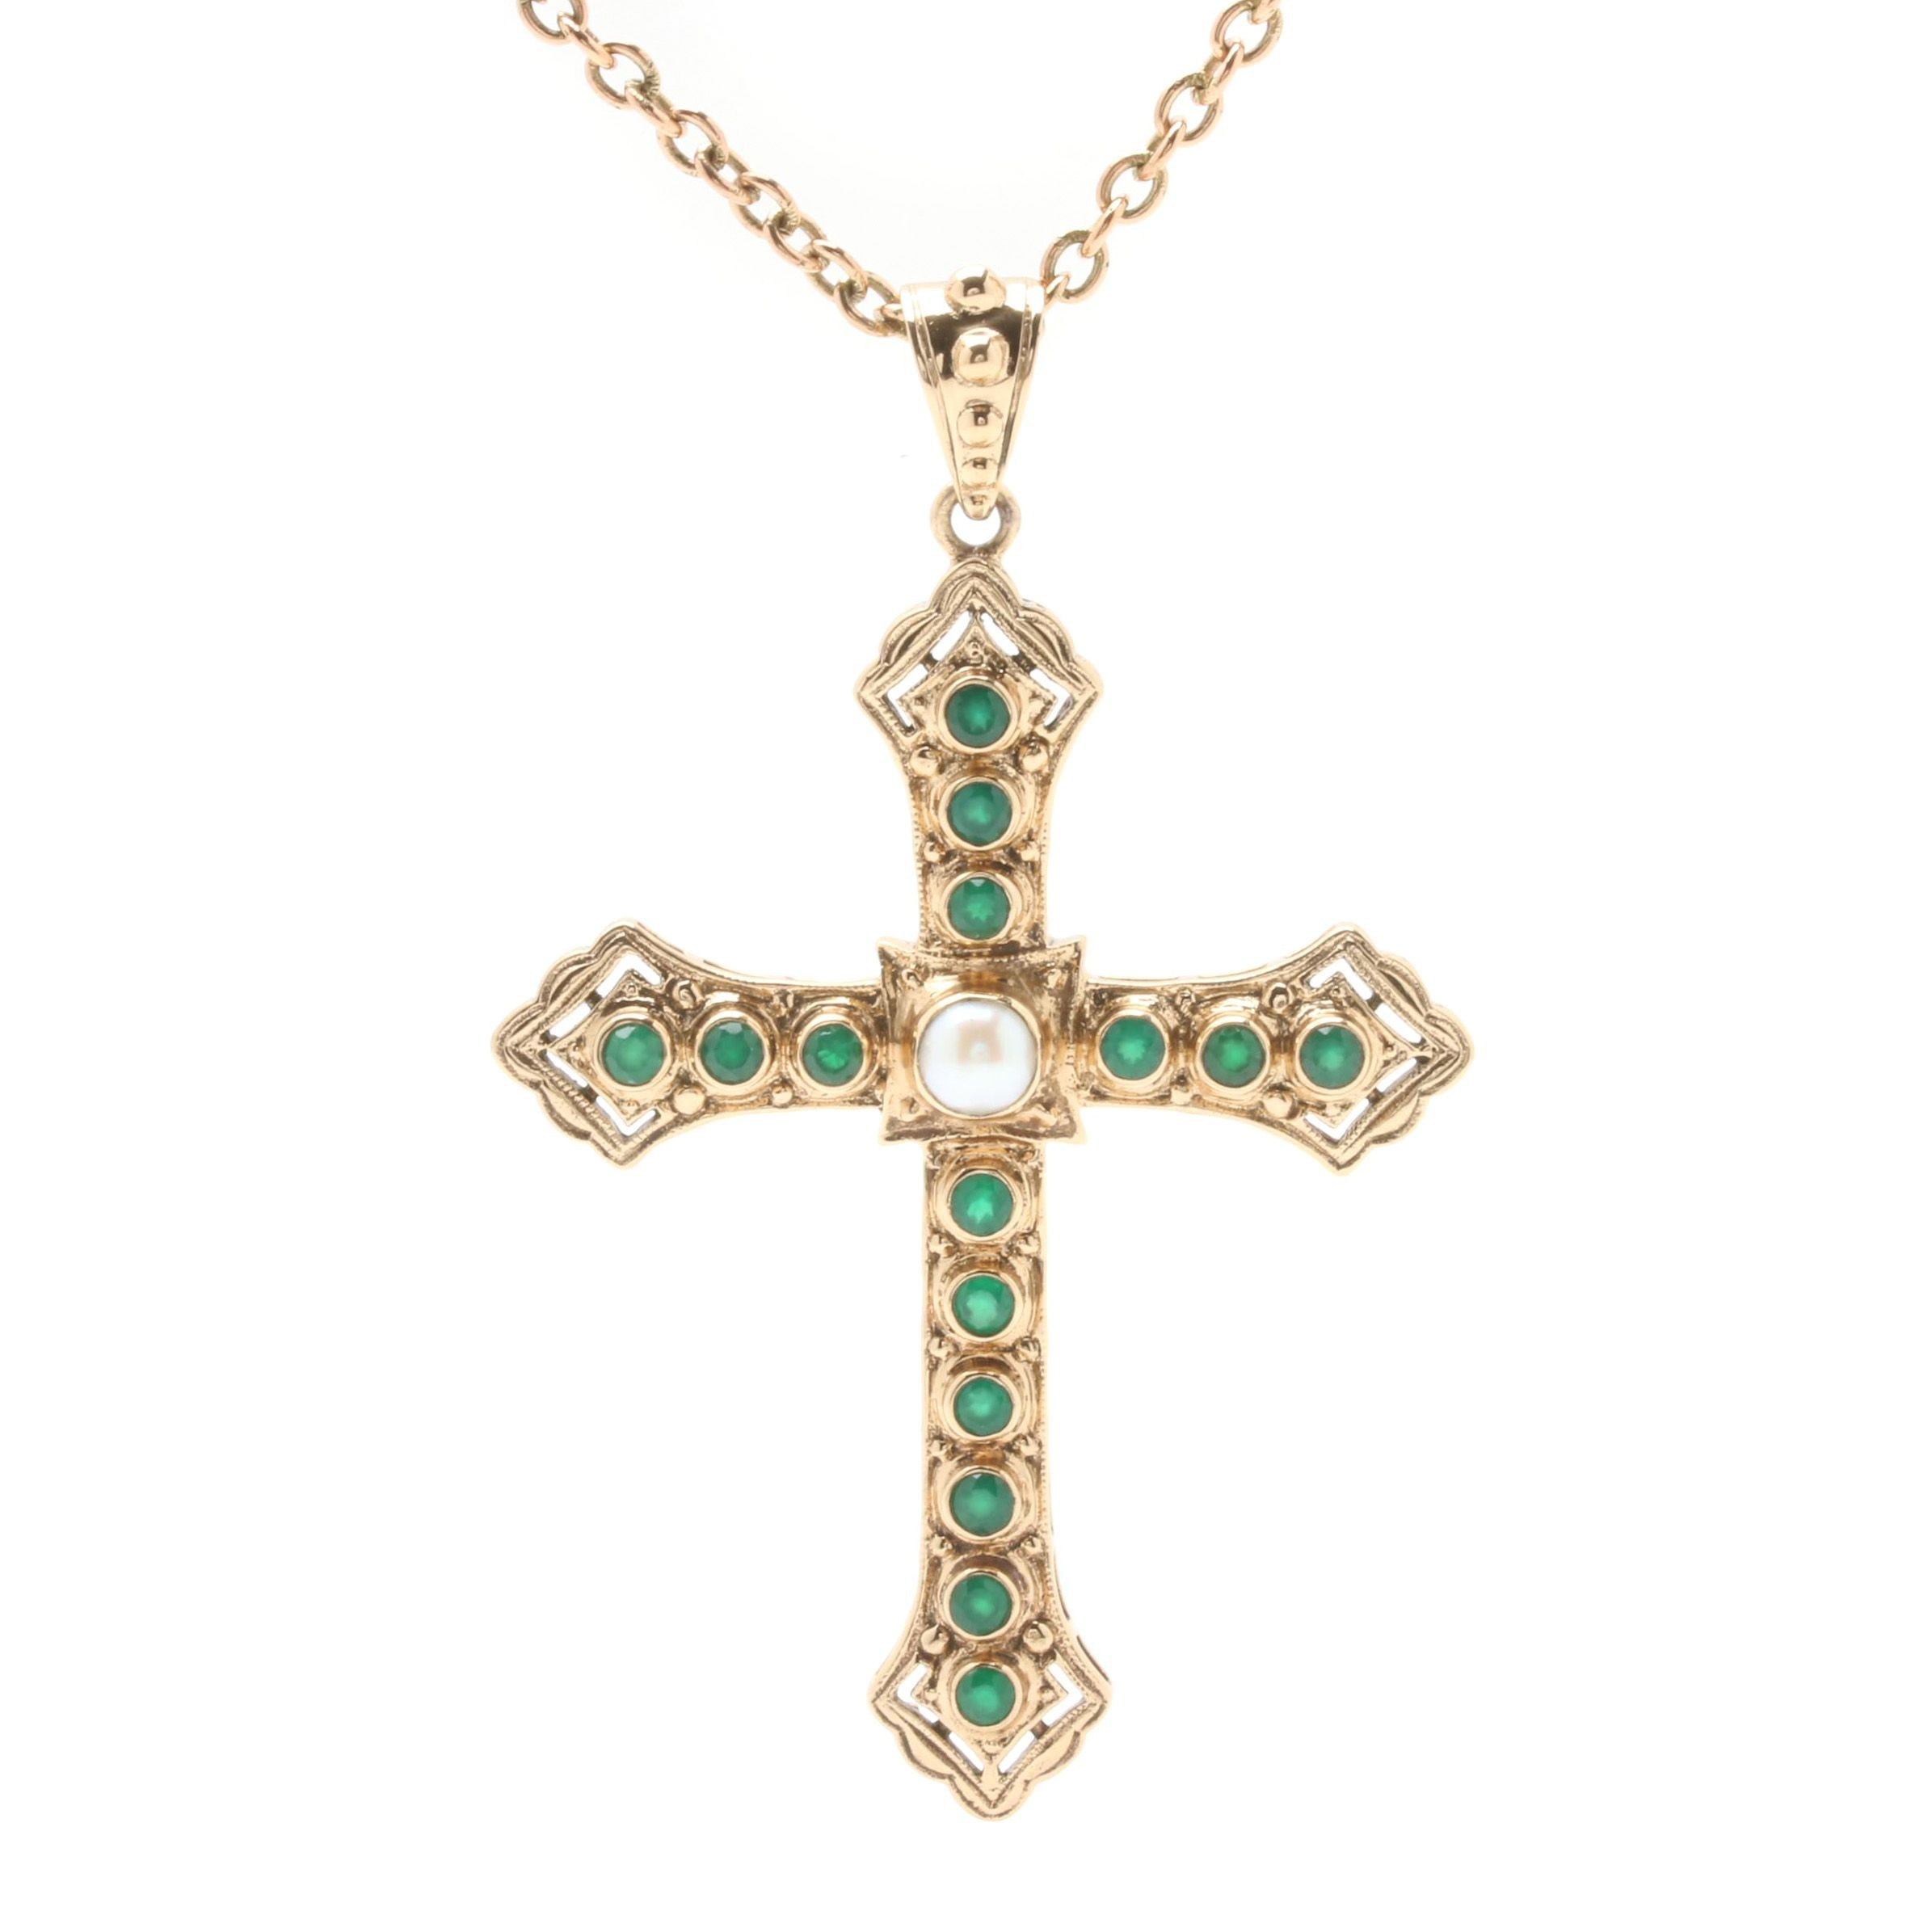 Nicky Butler Synthetic Emerald and Cultured Pearl Crux Gemmata Pendant Necklace